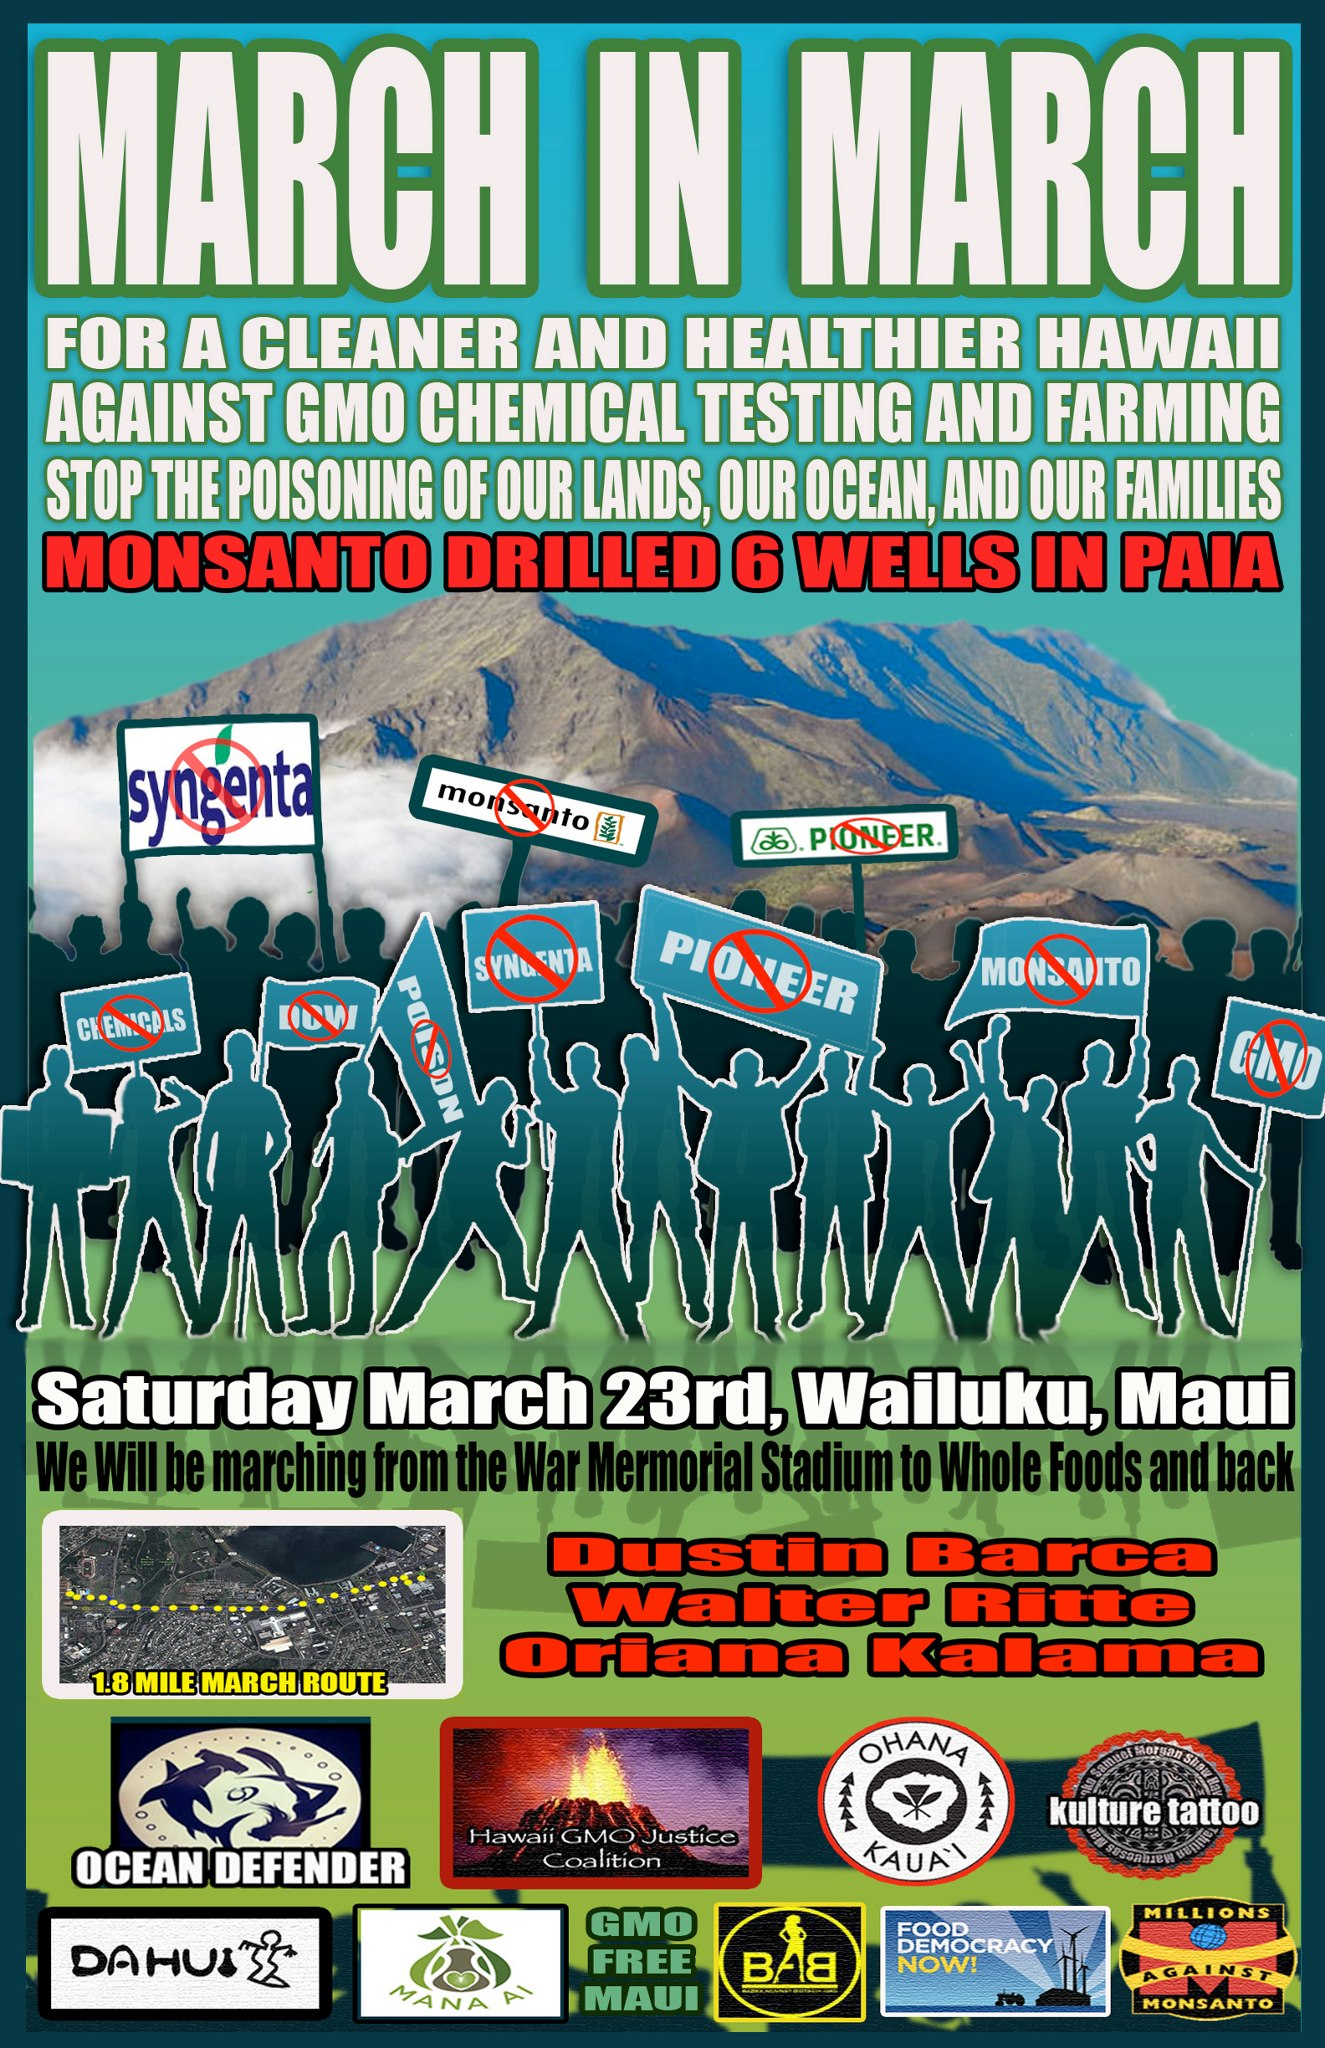 march in march to evict monsanto maui March23 March in March to Evict Monsanto Syngenta Protest Pollution pesticides Occupy Monsanto Oahu Monsanto Molokai Maui March lease land Kauai Kamehameha Schools herbicides Hawaii GMO Justice Coalition Hawaii Haleiwa DuPont Pioneer Dupont Dow Demonstration Dee Jay Mailer Chemicals Big Island Babes Against Biotech